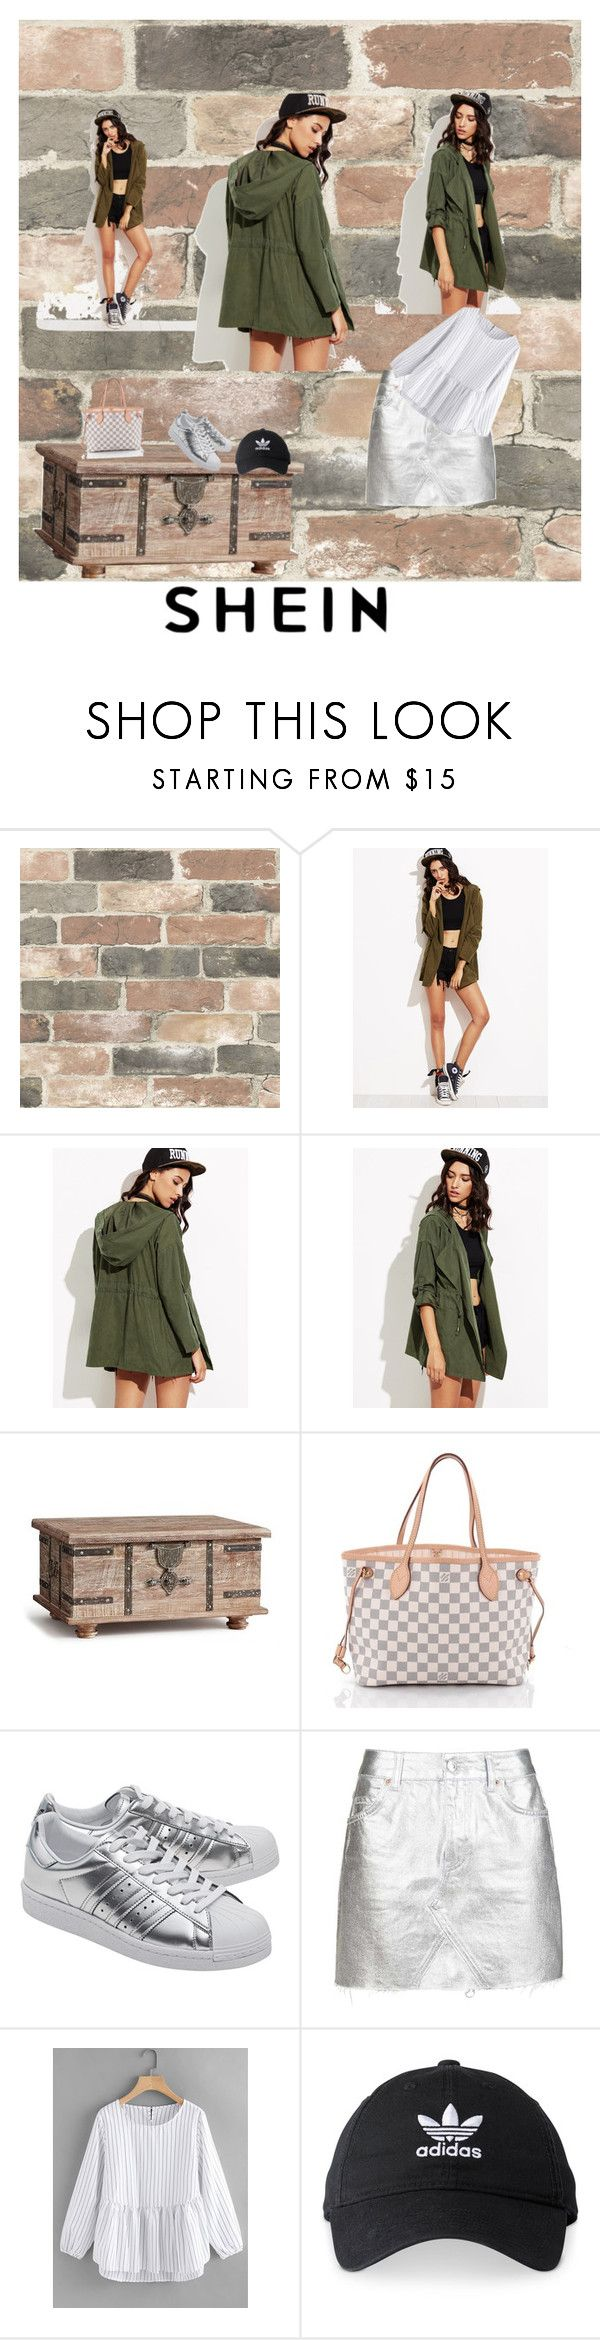 """SHEIN Contest Roll Up Sleeve Drawstring Hooded Coat"" by gigi-sessions ❤ liked on Polyvore featuring Wall Pops!, Pottery Barn, Louis Vuitton, adidas Originals, Topshop and adidas"